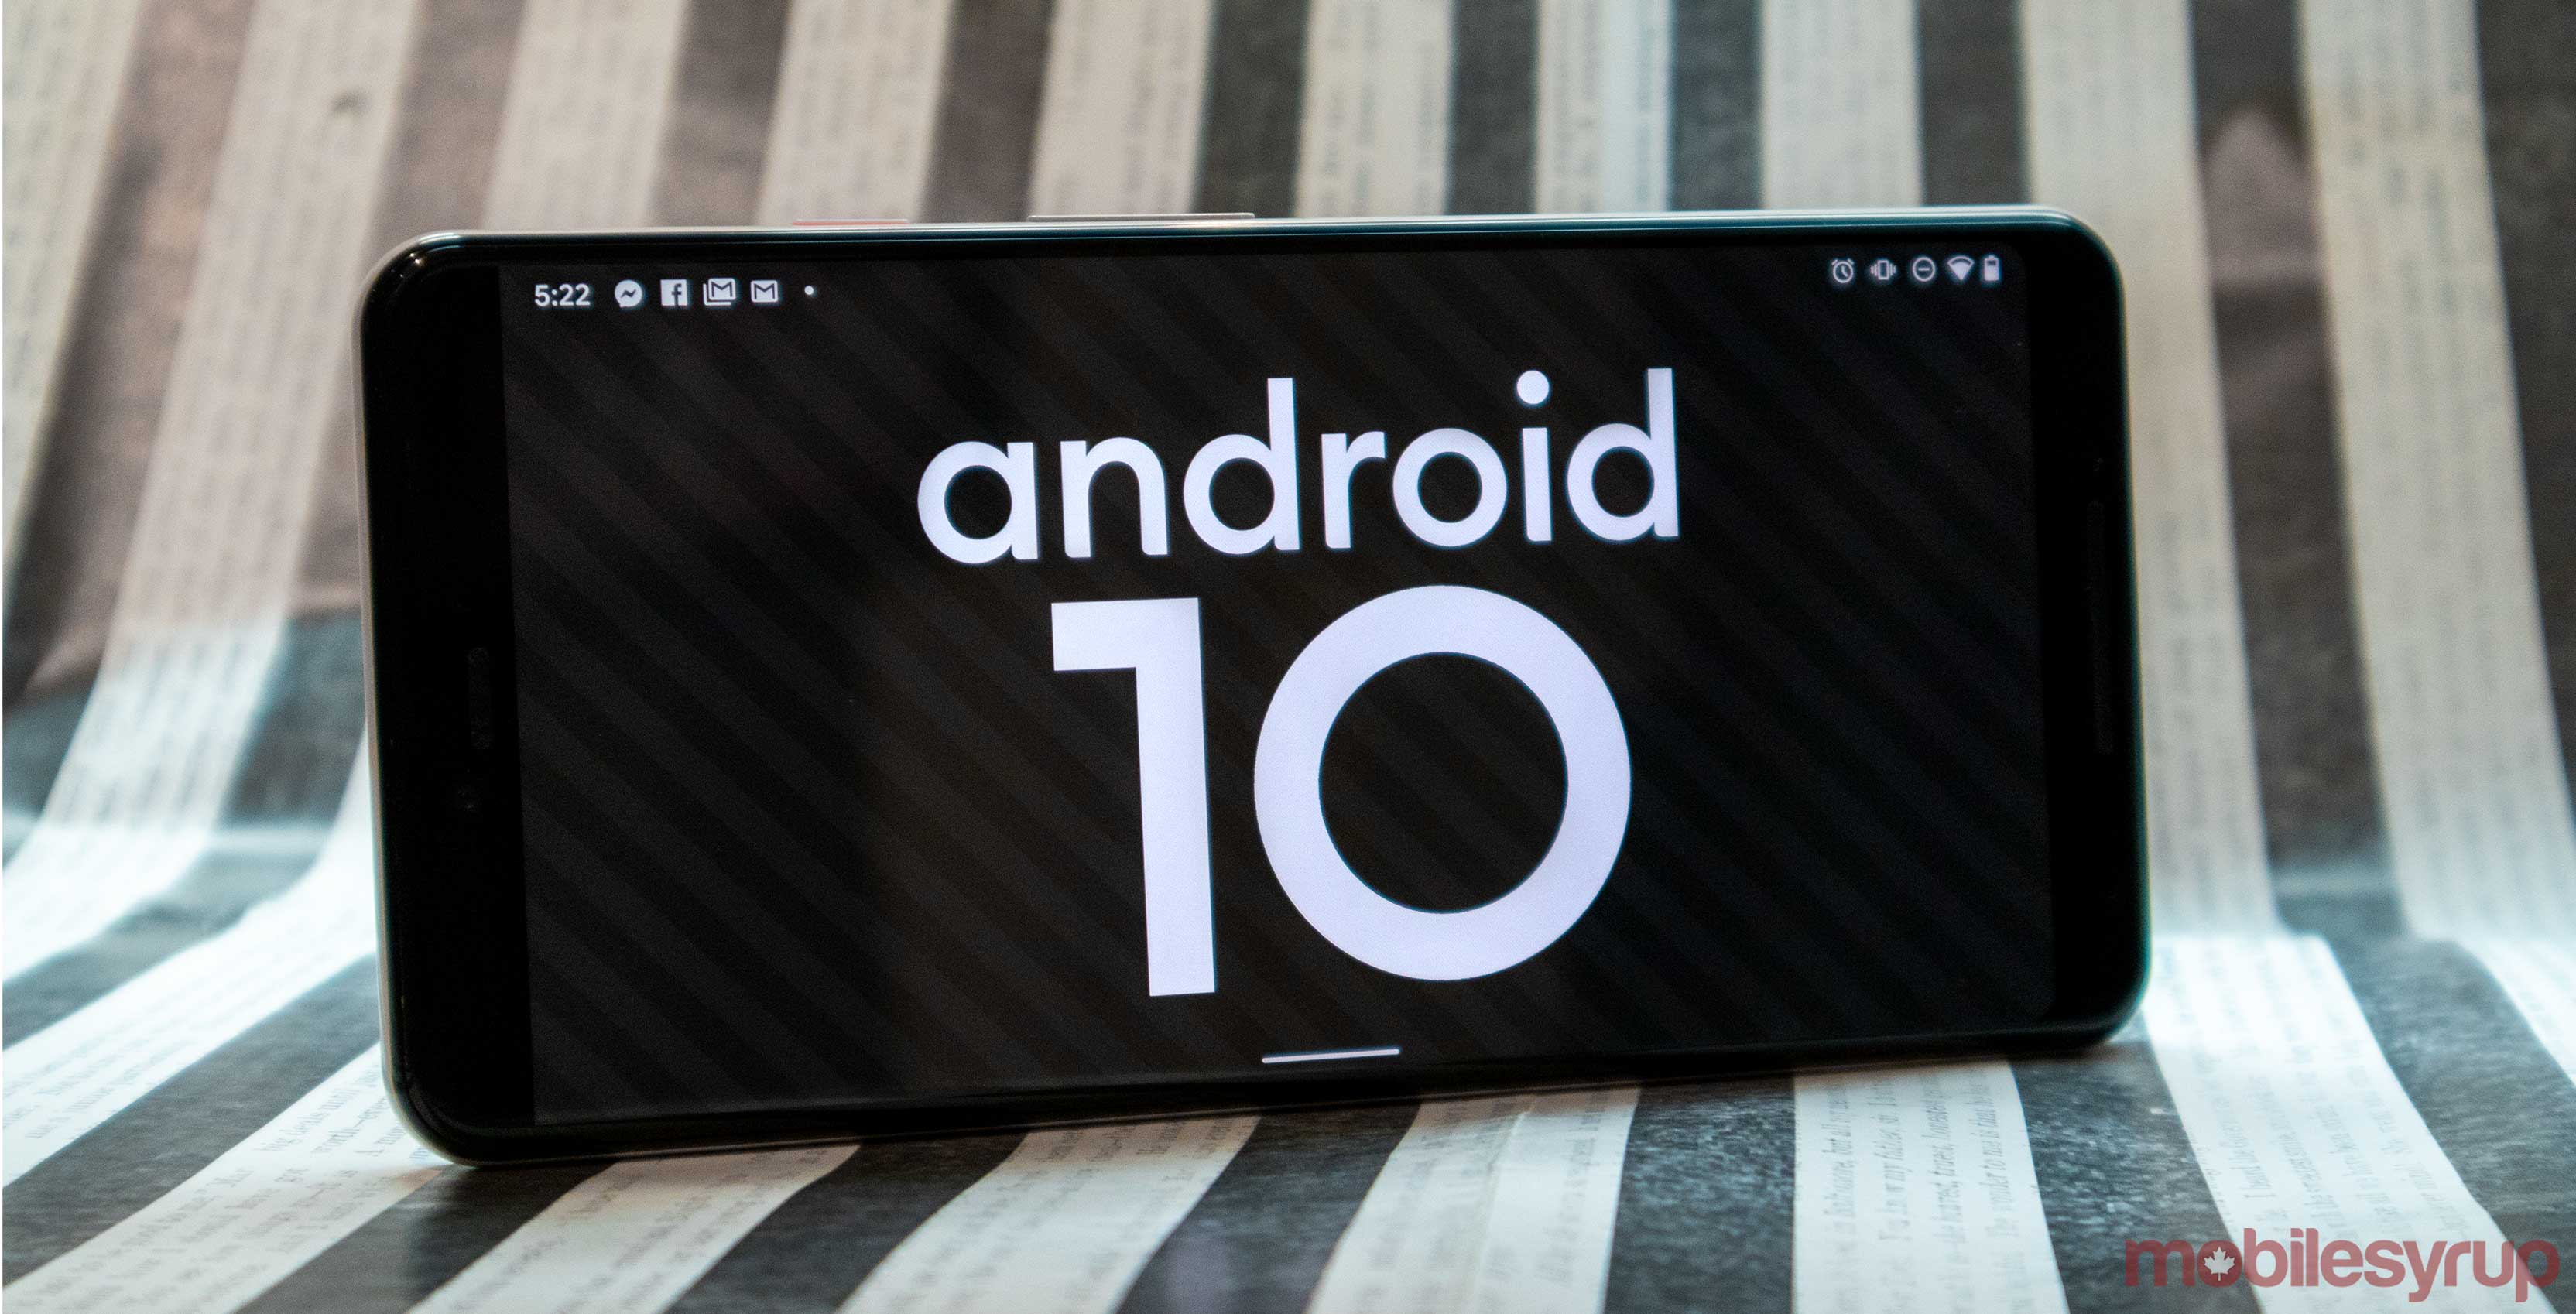 Android 10 'Rules' feature spotted in action by lone user